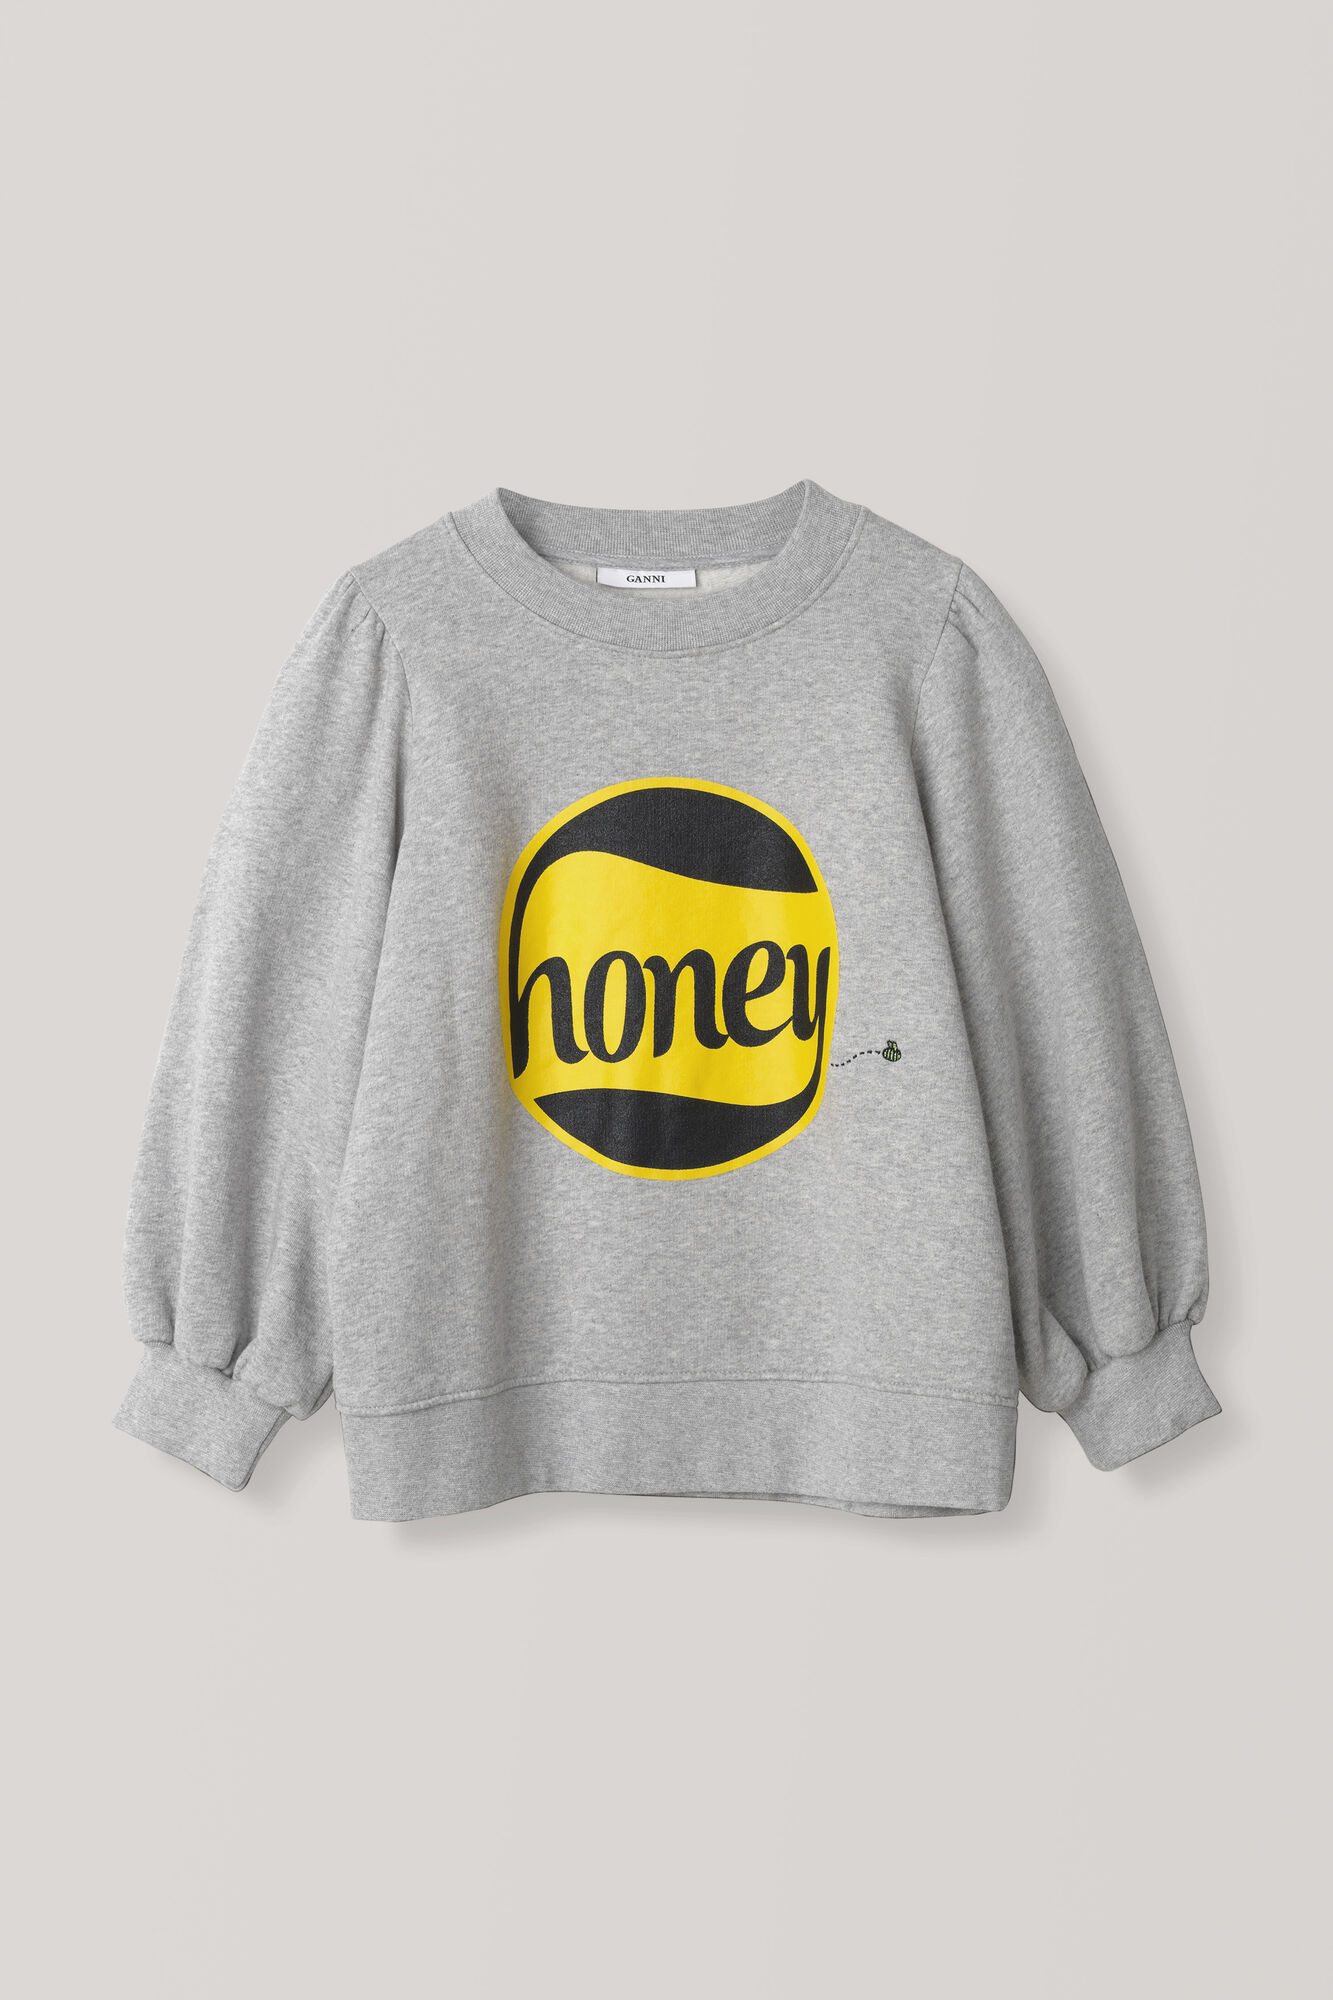 Lott Isoli Puff Sweatshirt, Honey, Paloma Melange, hi-res